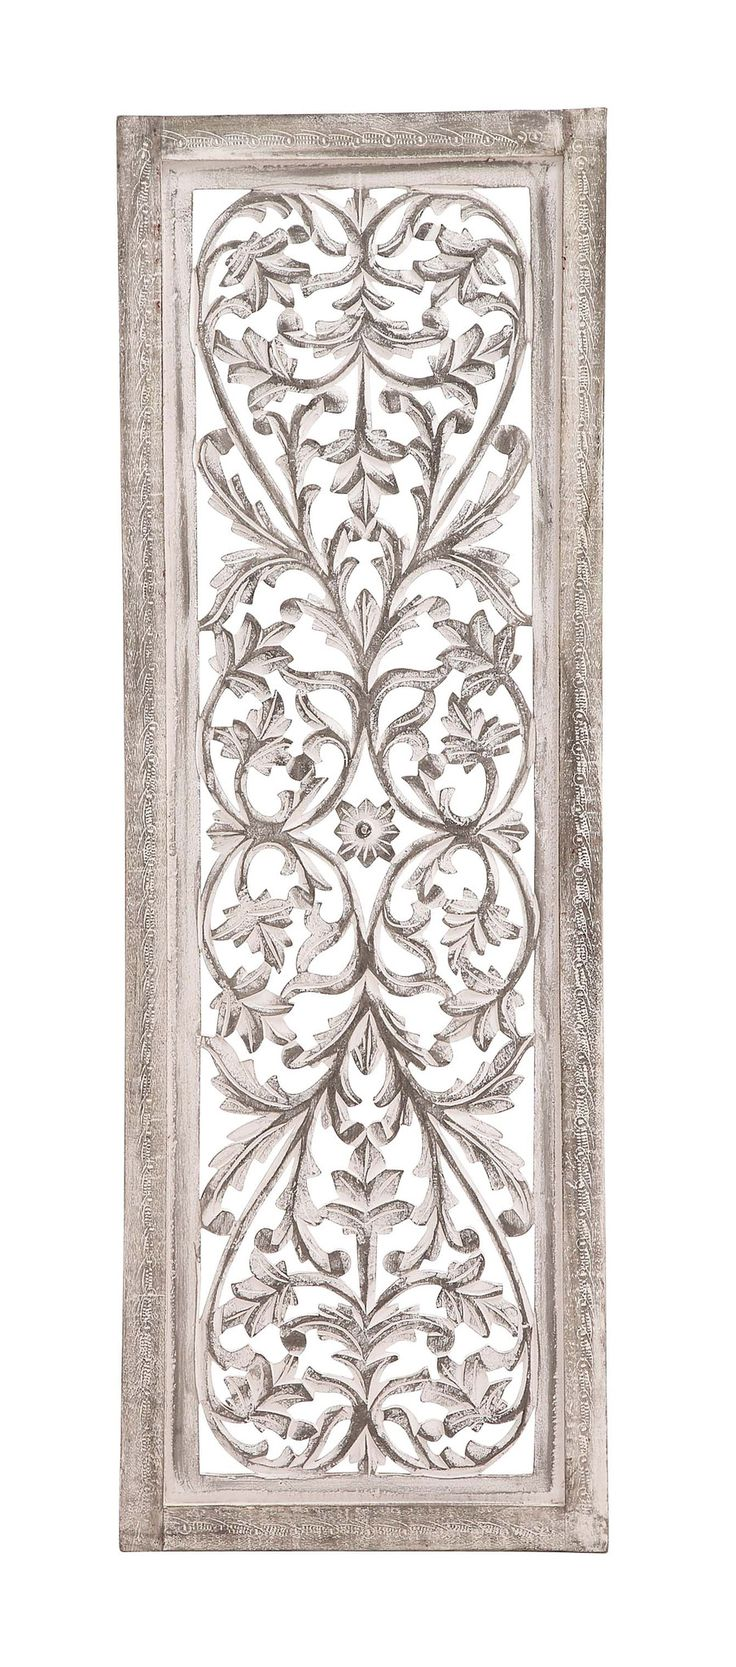 Garden wall ornaments - 48 White Shabby Moroccan Leaf Wood Wall Art Panel French Country Decor